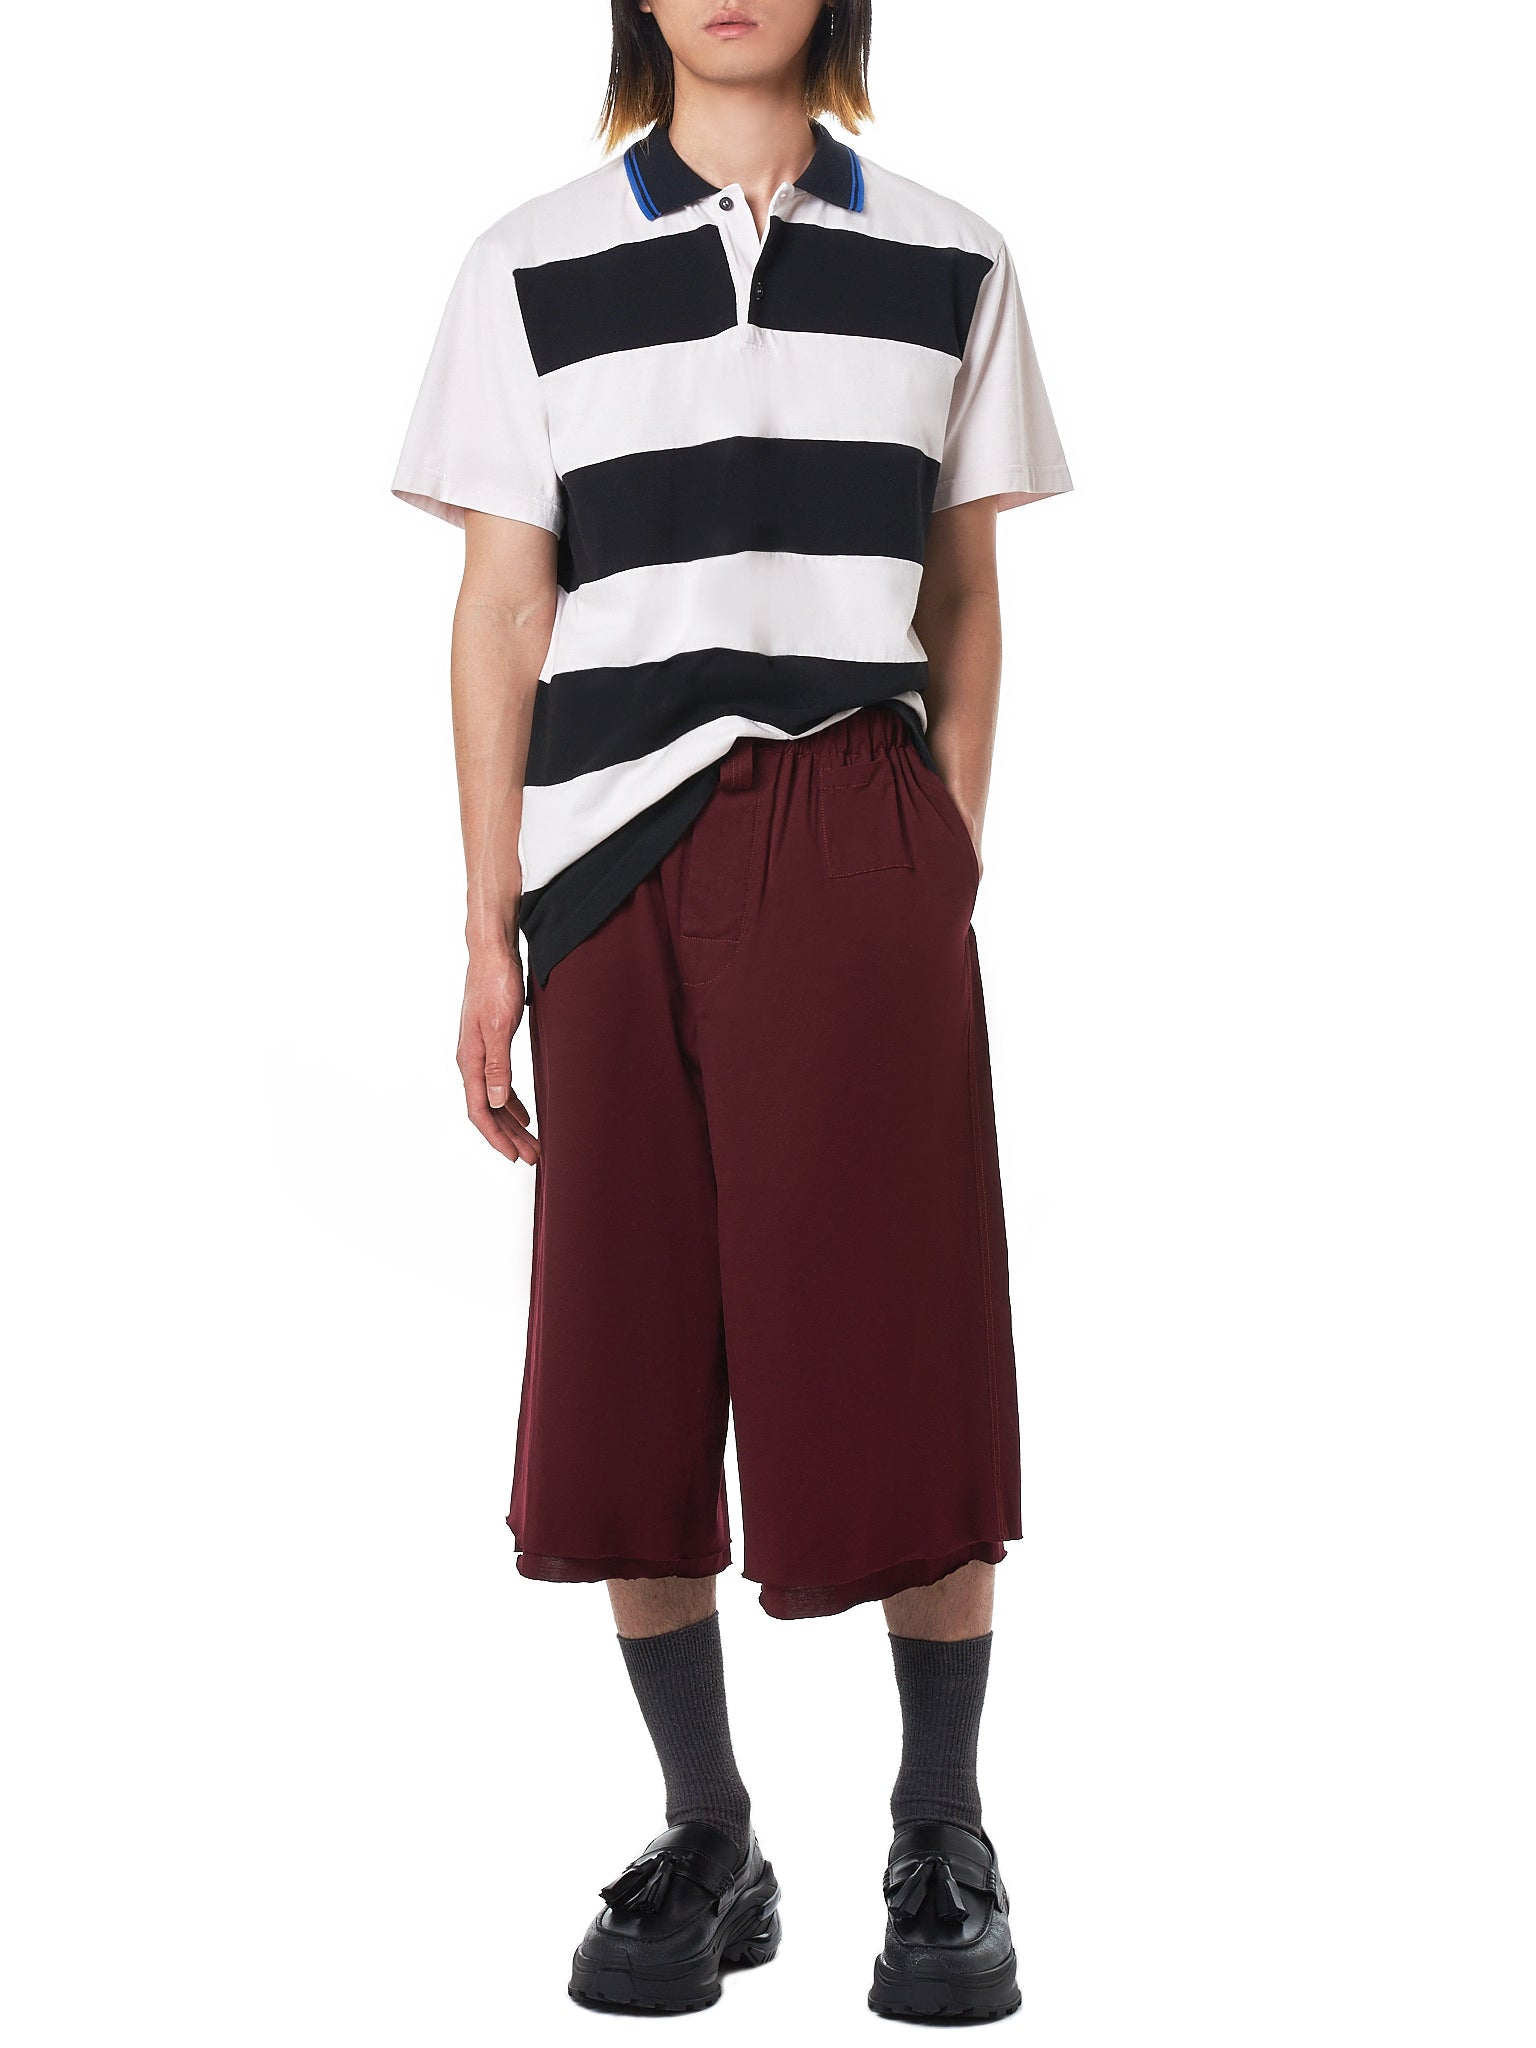 Marni Striped Polo - Hlorenzo Style